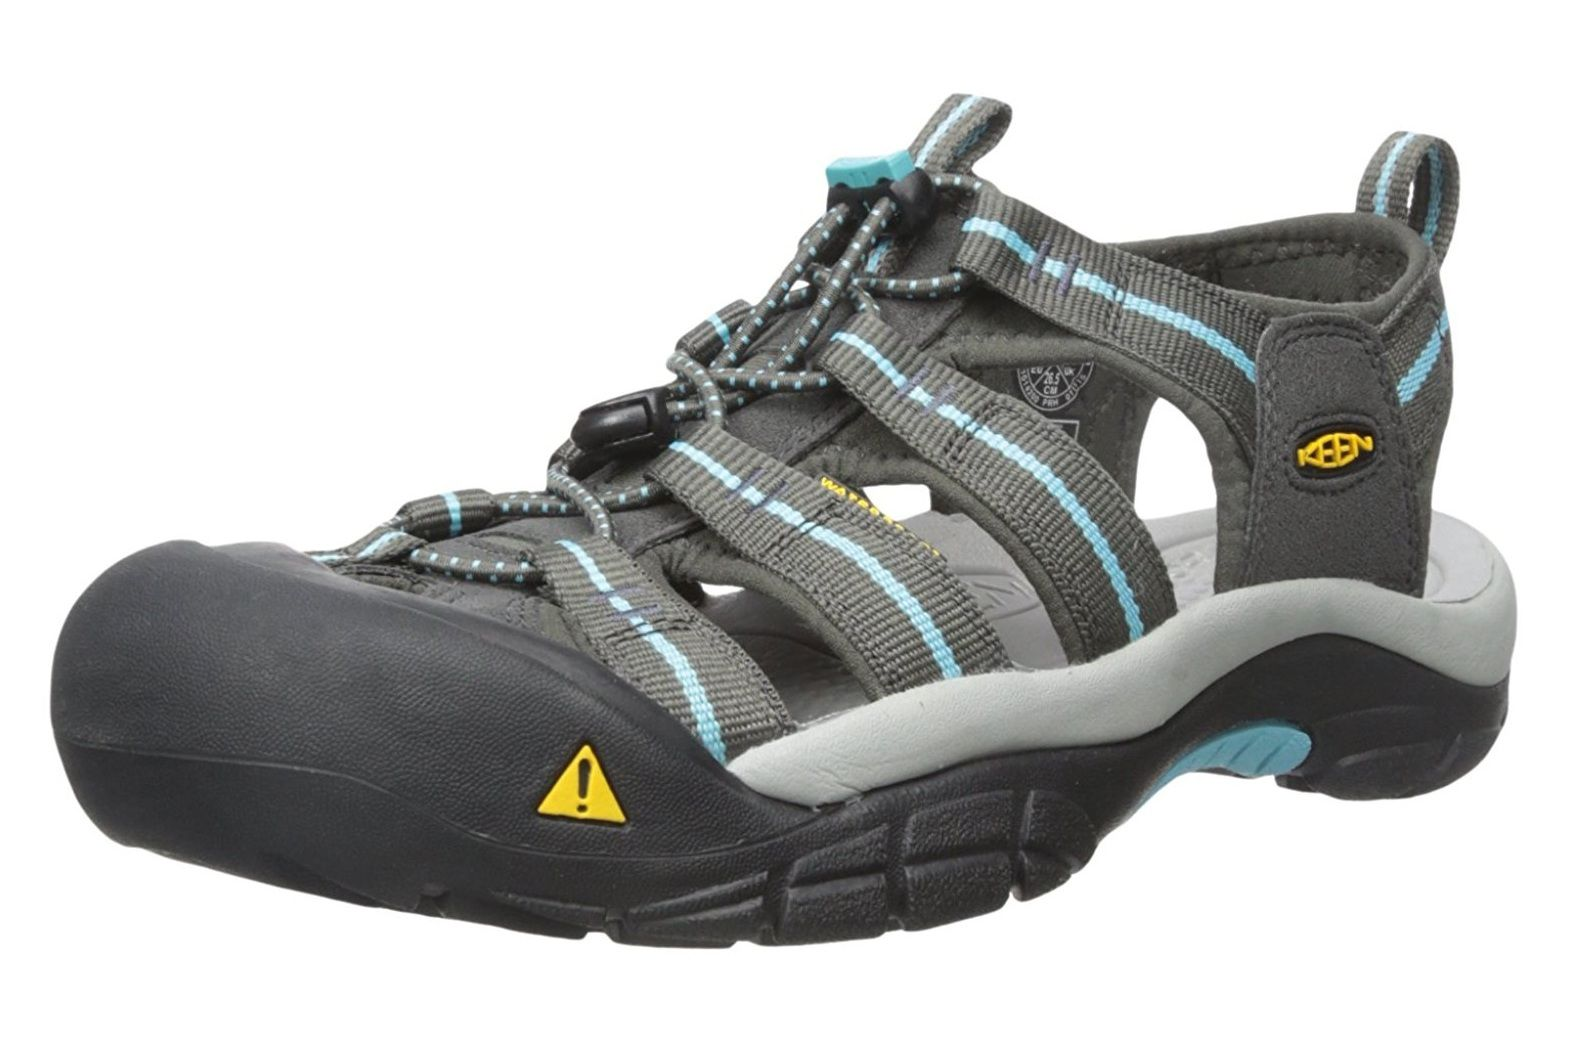 1b55beca65d9 The 9 Best Walking Sandals of 2019